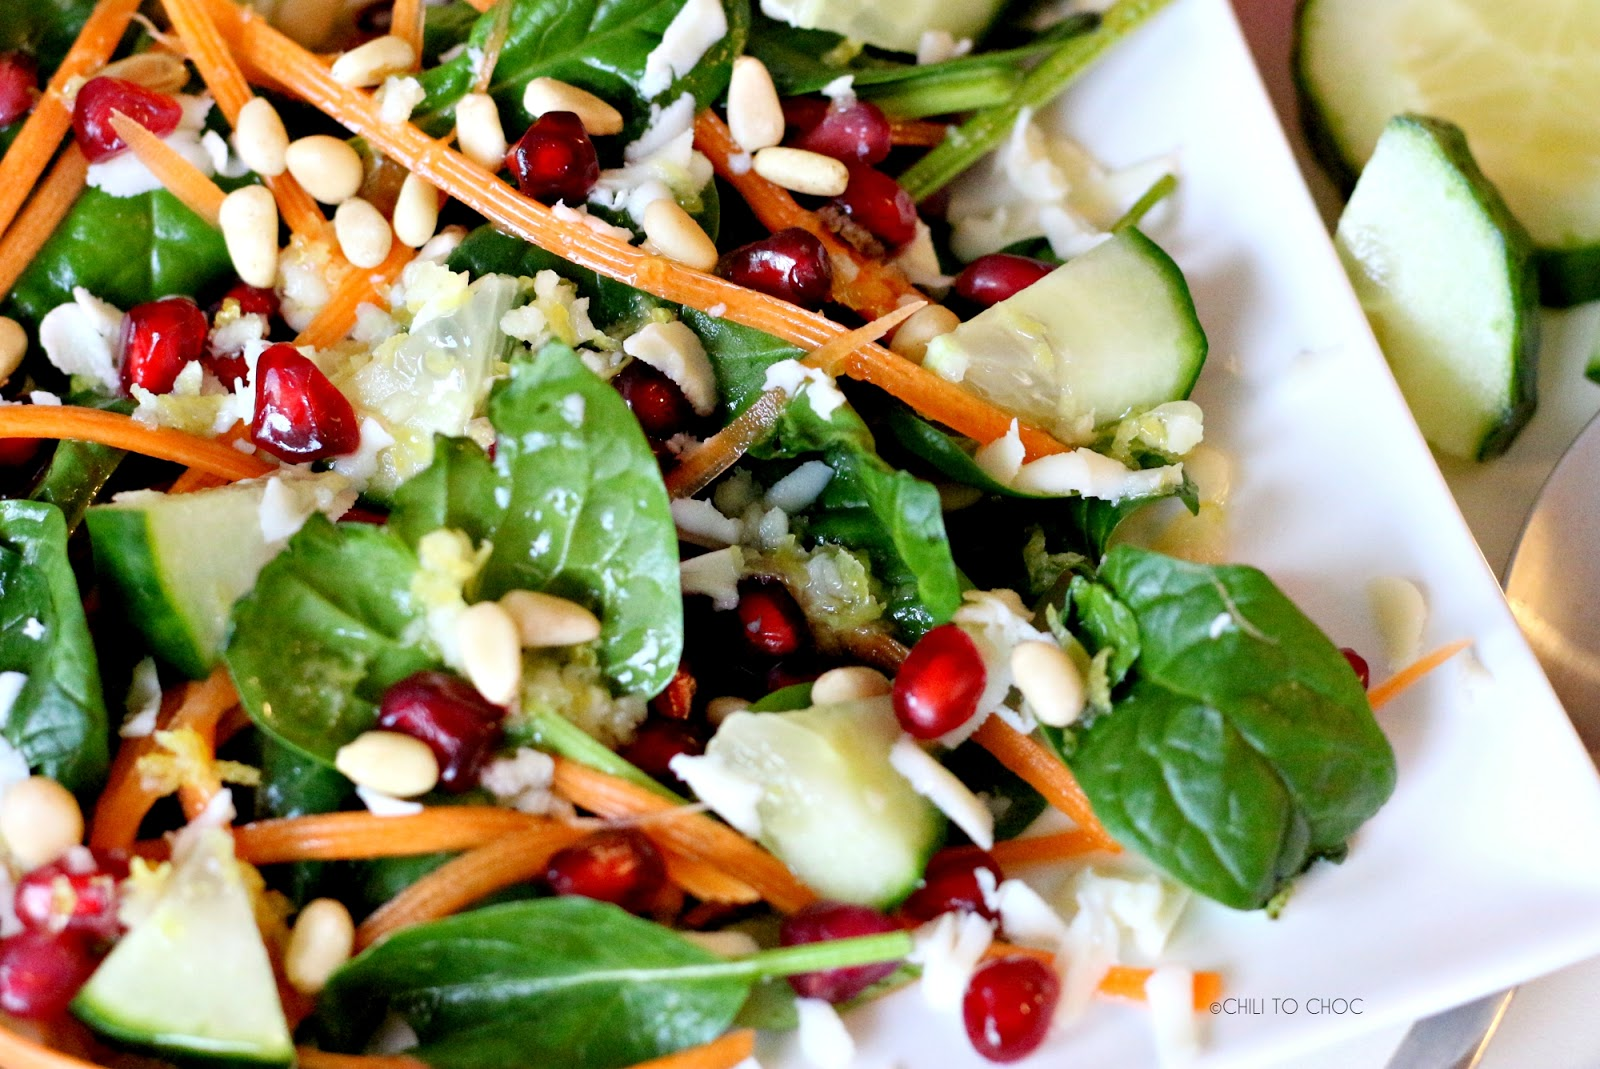 Spinach Pomegranate Salad with Honey Lime Dressing